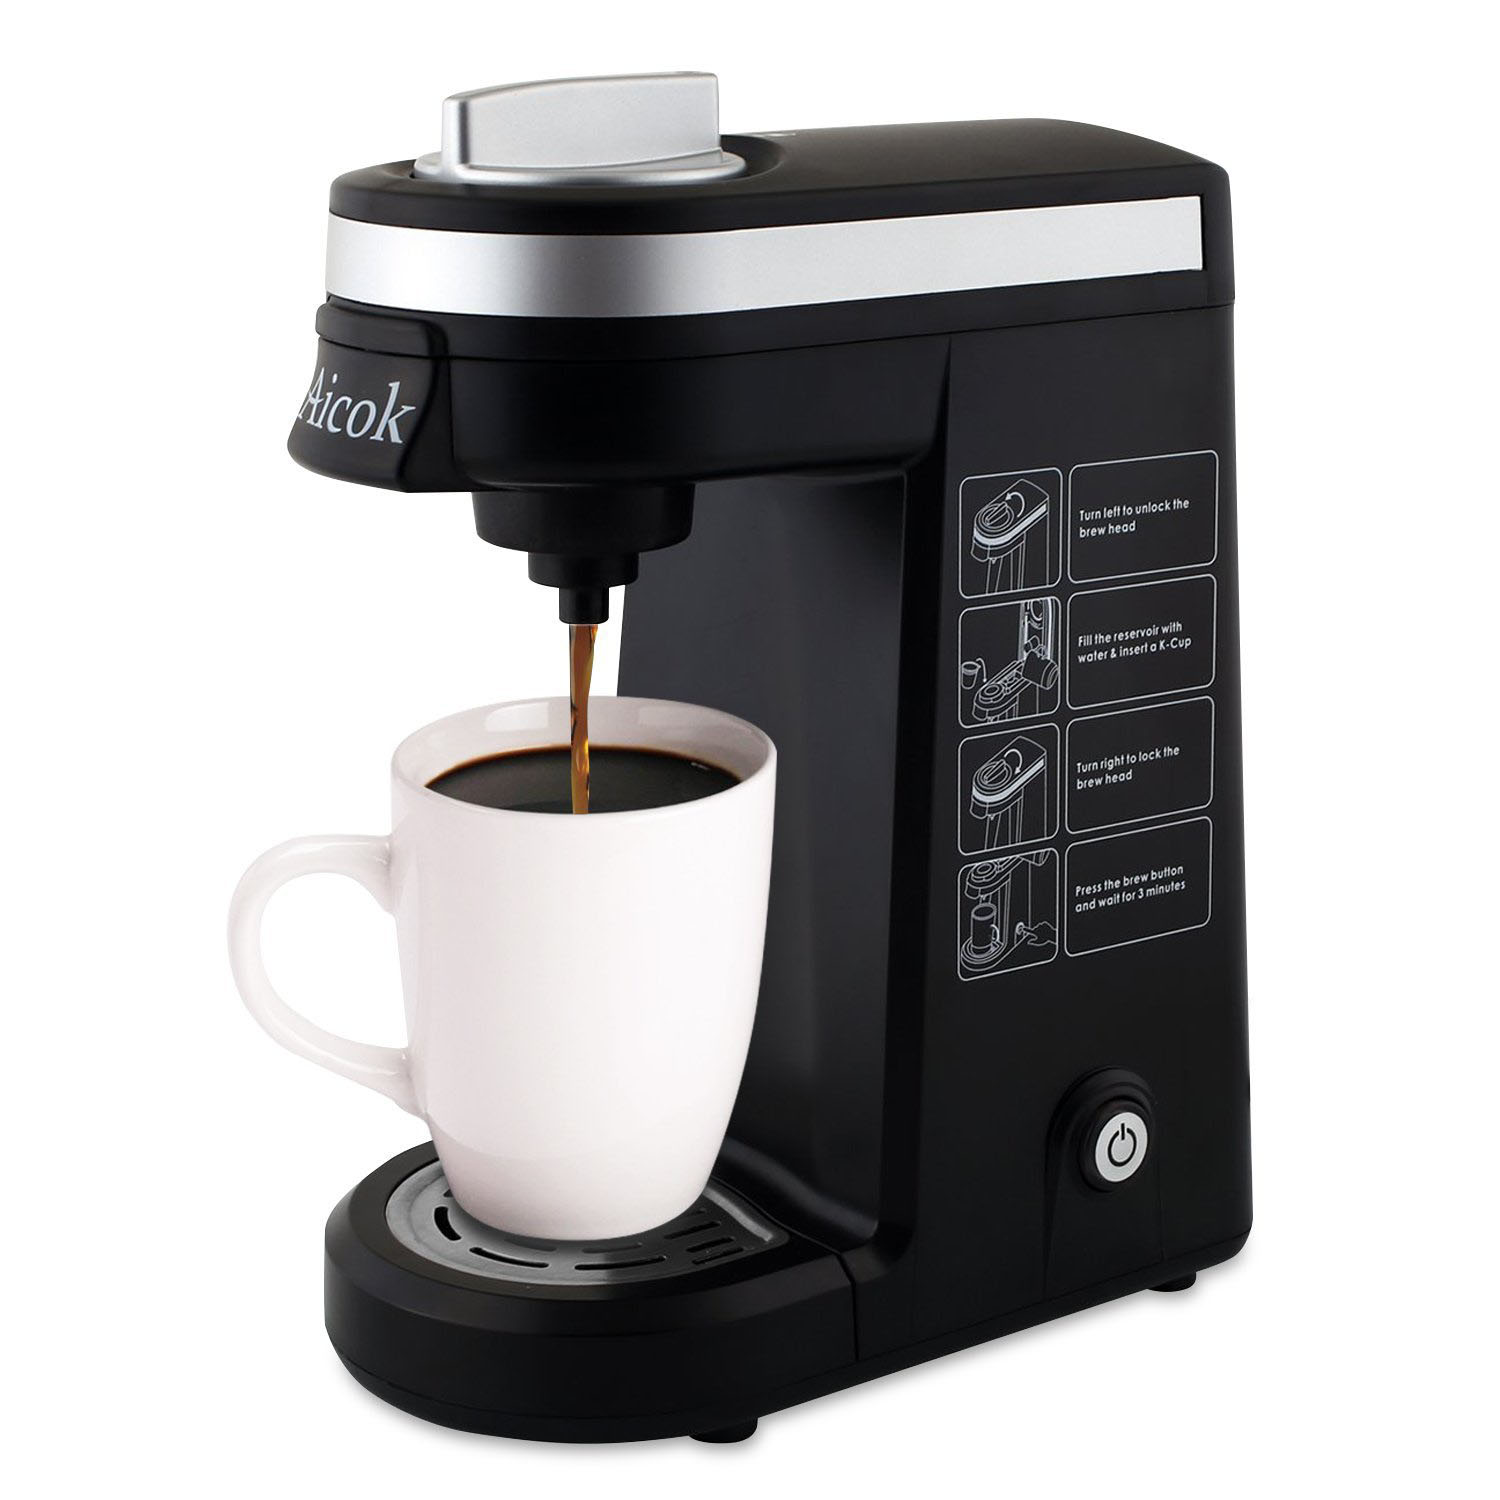 Best Coffee Maker One Cup : Deal of the Day: 54% Off Aicok Single Serve K-Cup Coffee Maker